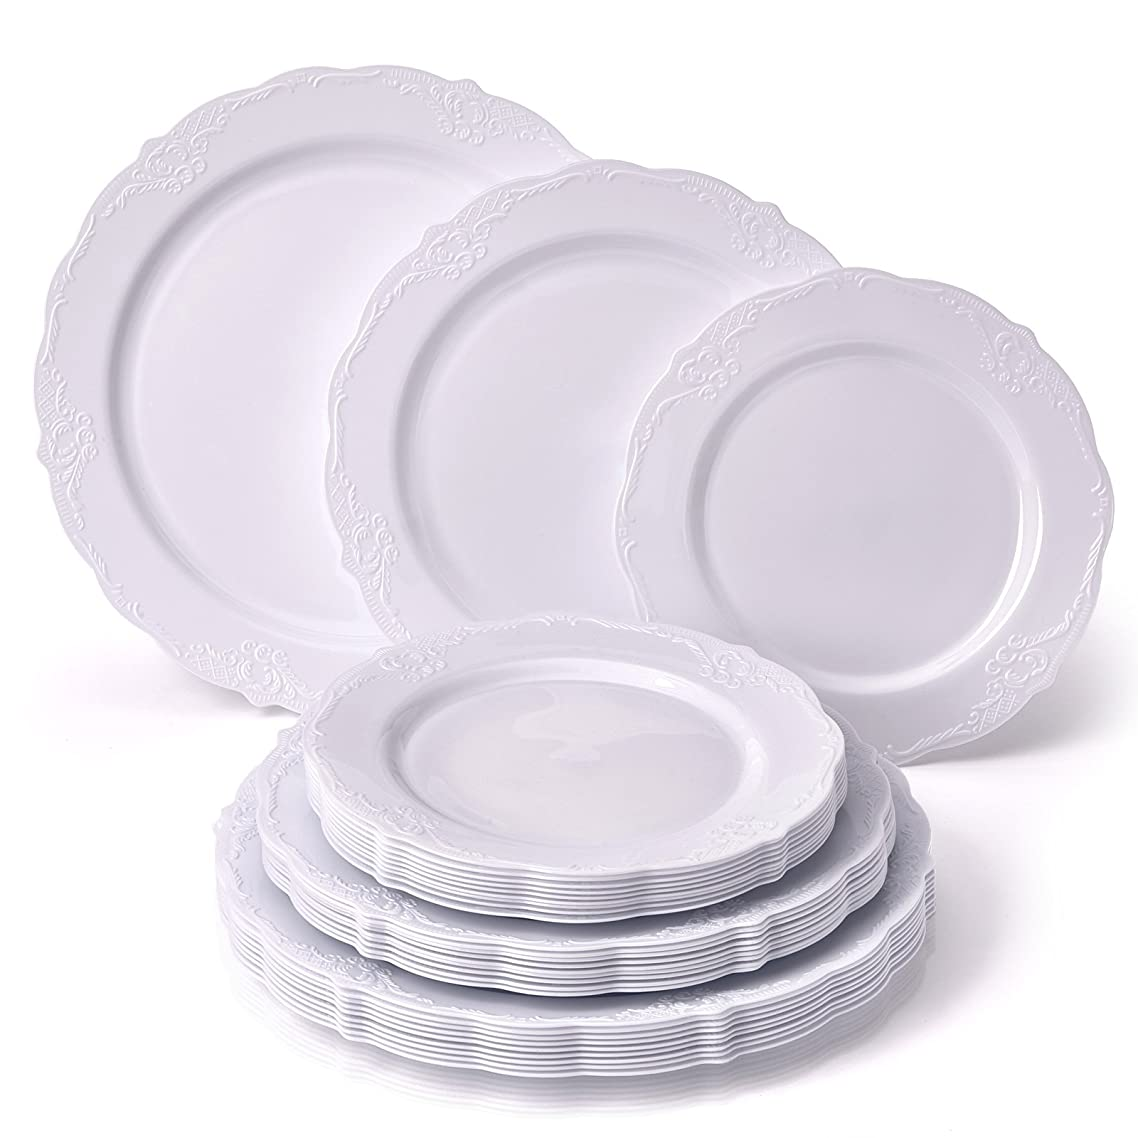 PARTY DISPOSABLE 30 PC DINNERWARE SET | 10 Dinner Plates | 10 Salad Plates | 10 Dessert Plates | Heavyweight Plastic Dishes | Fine China Look | Upscale Wedding and Dining (Vintage Collection - White)